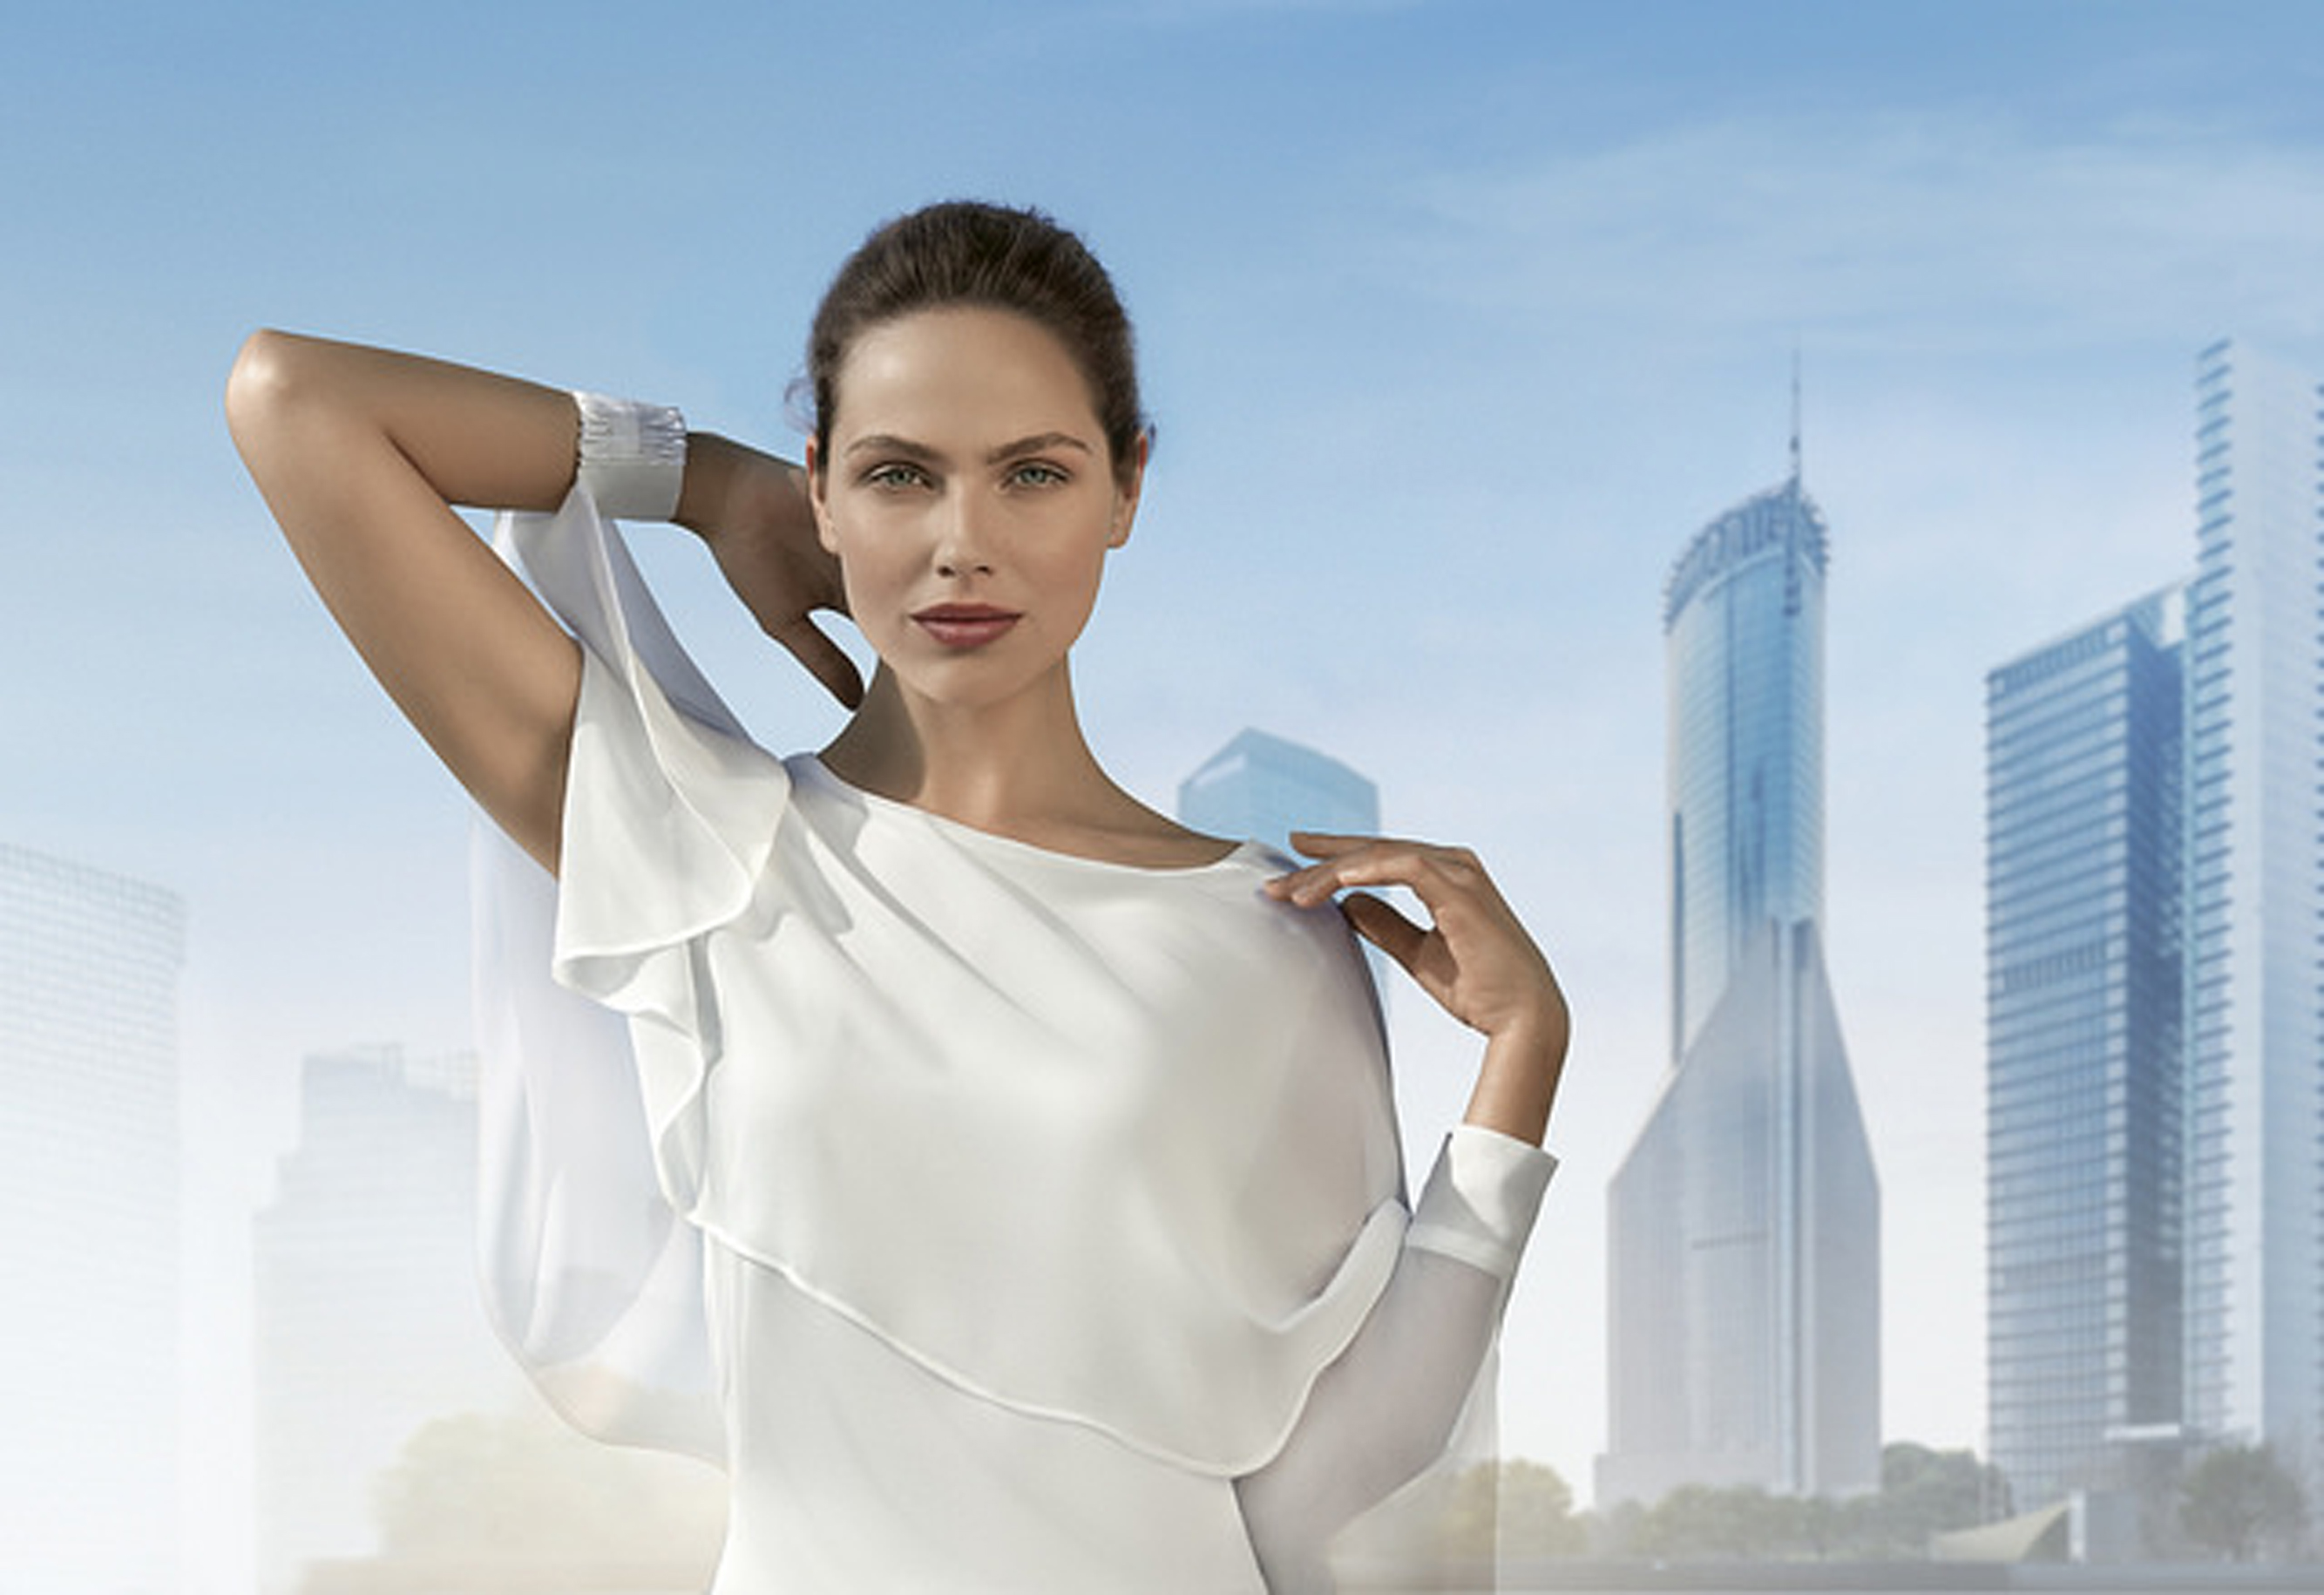 woman in front of a city skyline